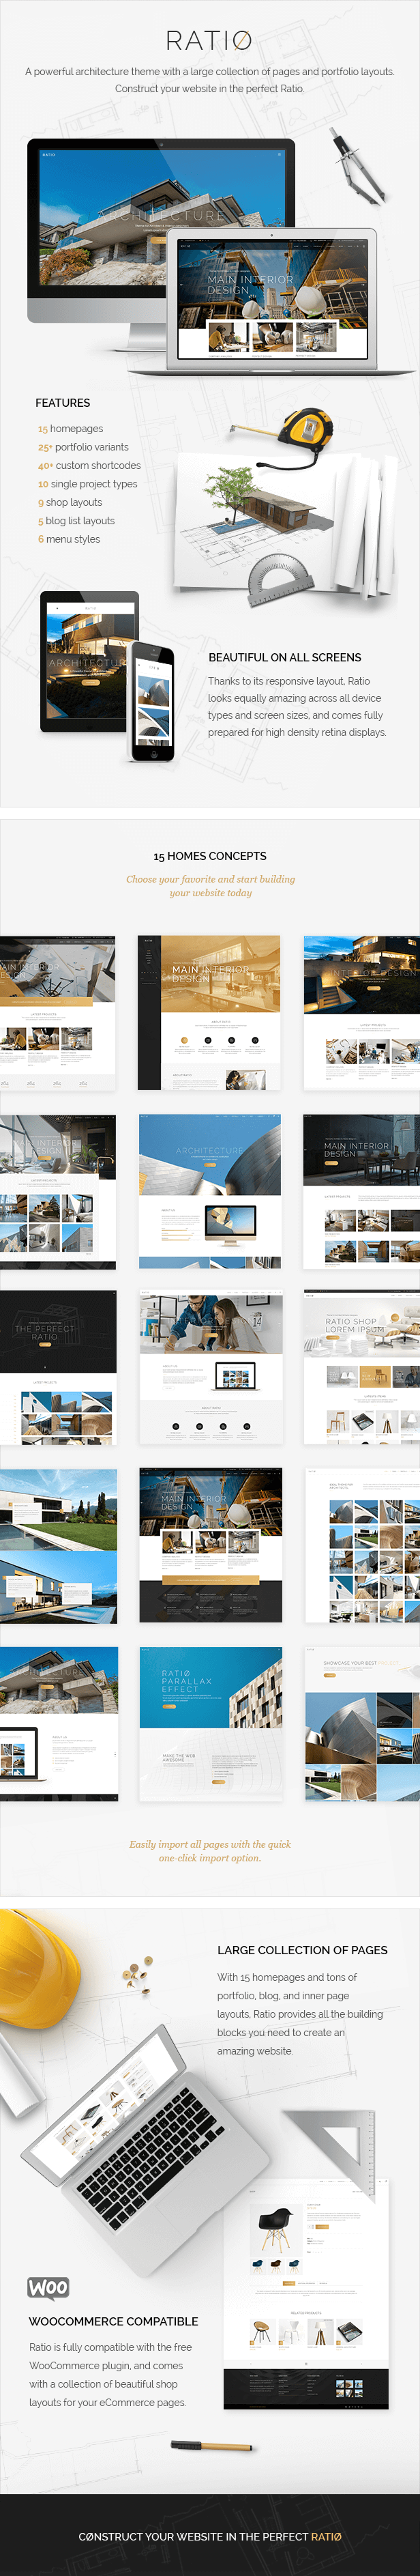 Ratio - A Powerful Interior Design and Architecture Theme - 1